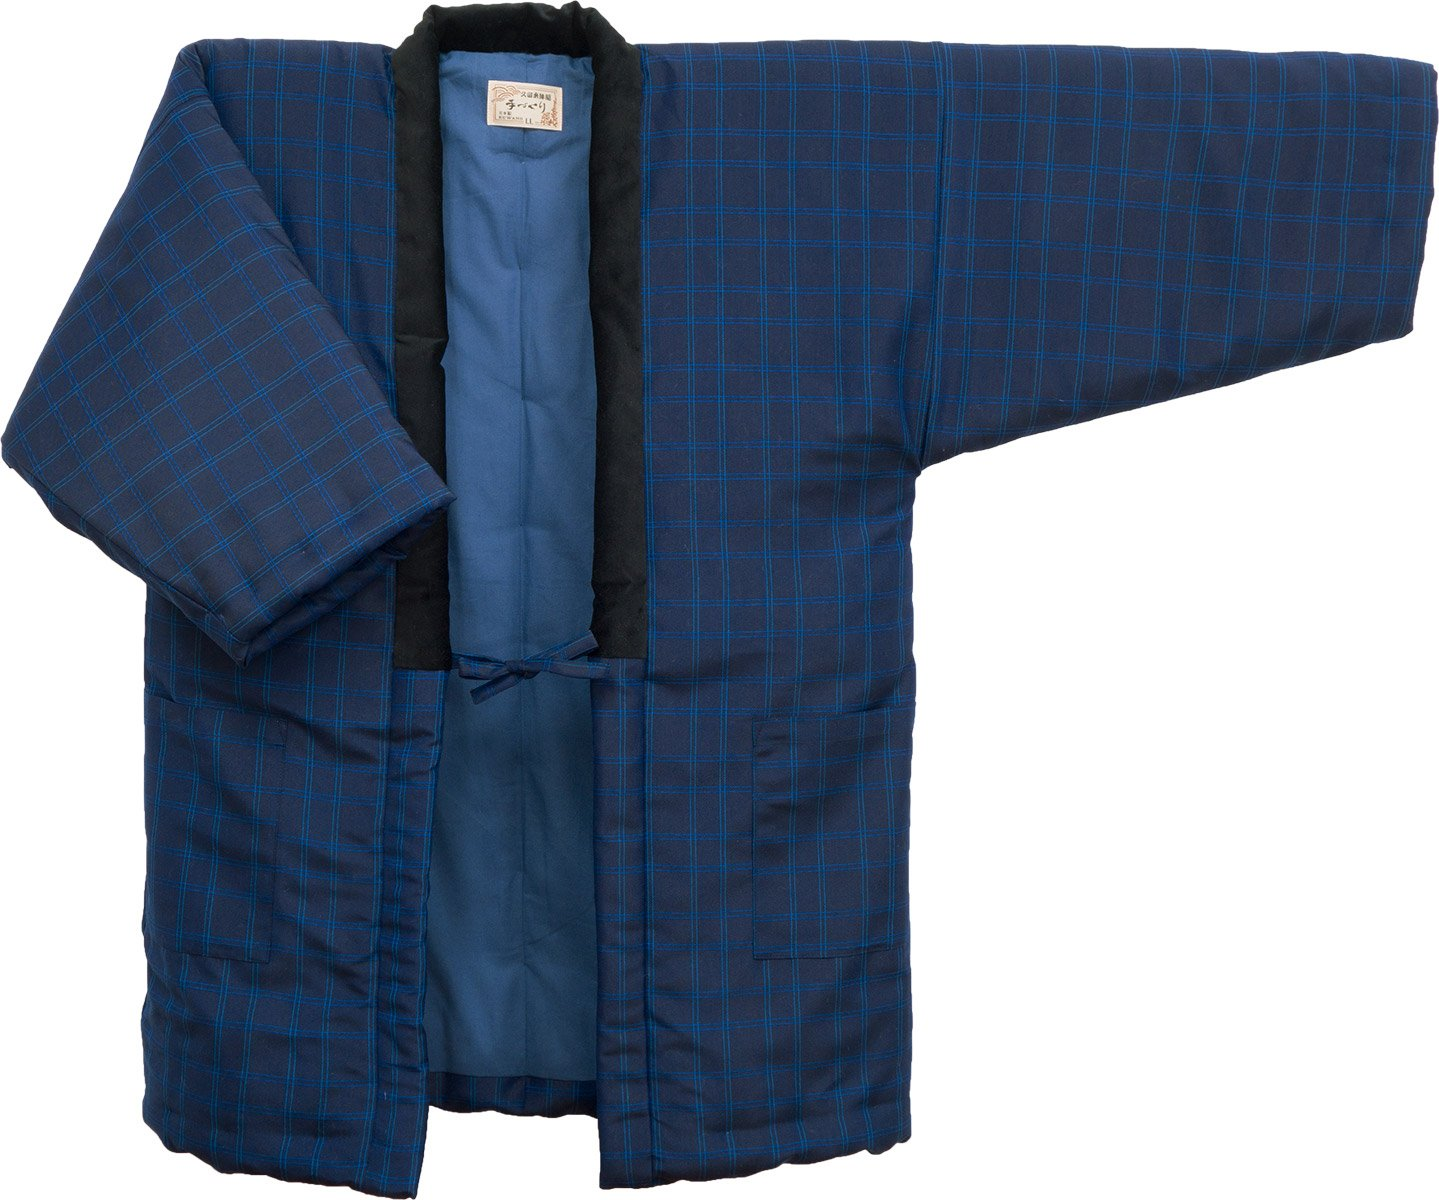 HANTEN (Cotton jacket made in Japan Kimono-style) Japanese clothes X-Large Size Men's (X-Large, 188) by WATANOSATO